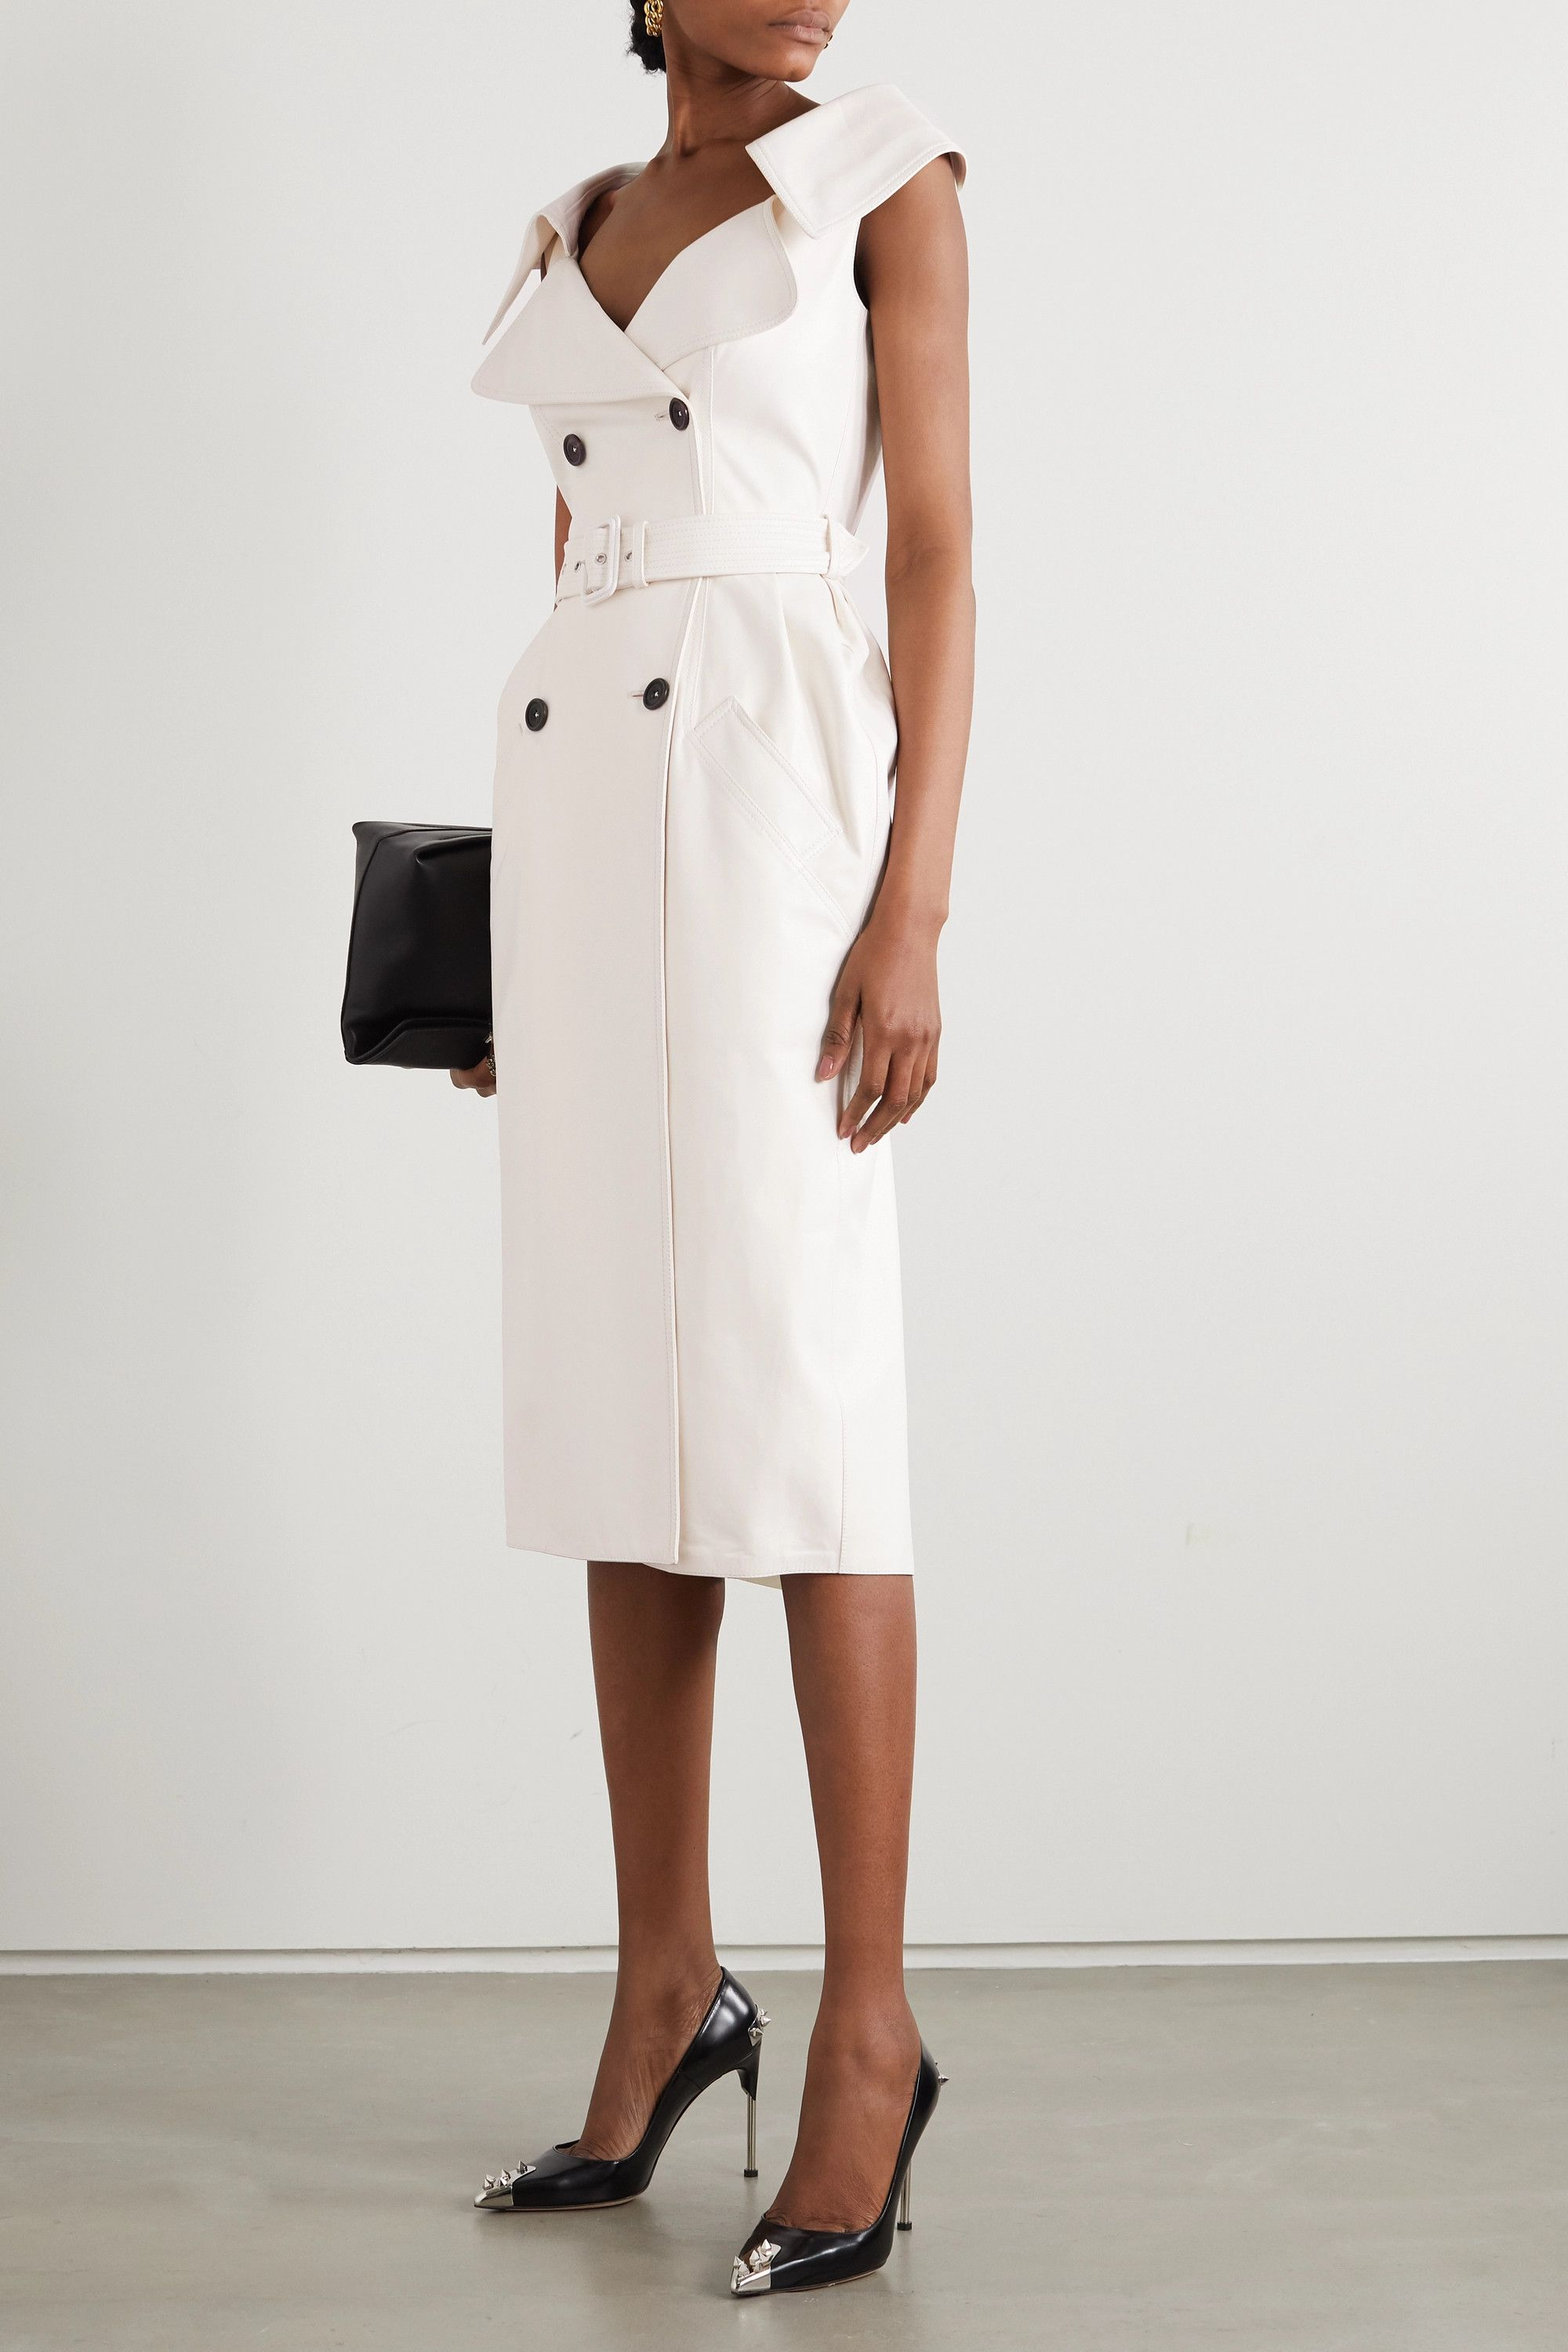 White Belted Double Breasted Leather Midi Dress Alexander Mcqueen In 2021 Leather Midi Dress White Leather Dress Leather Dresses [ 3000 x 2000 Pixel ]